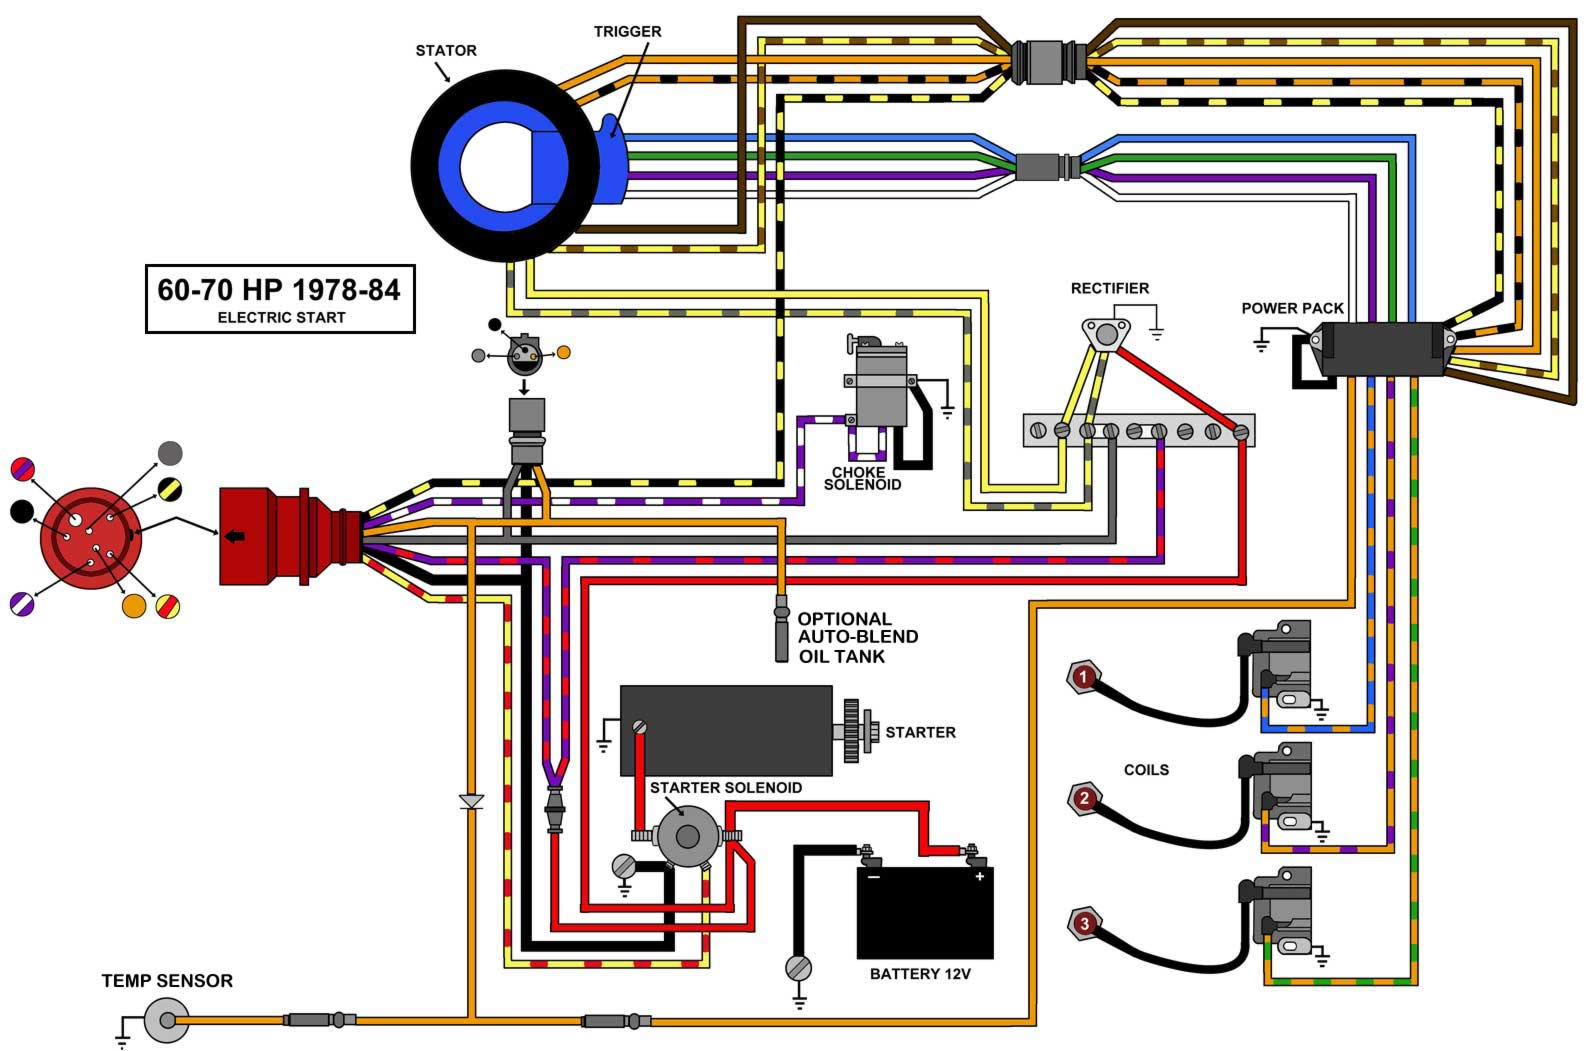 78 84_3 CYL_EL wiring tach from johnson controls page 1 iboats boating forums 3 wire tilt trim wiring diagram at reclaimingppi.co